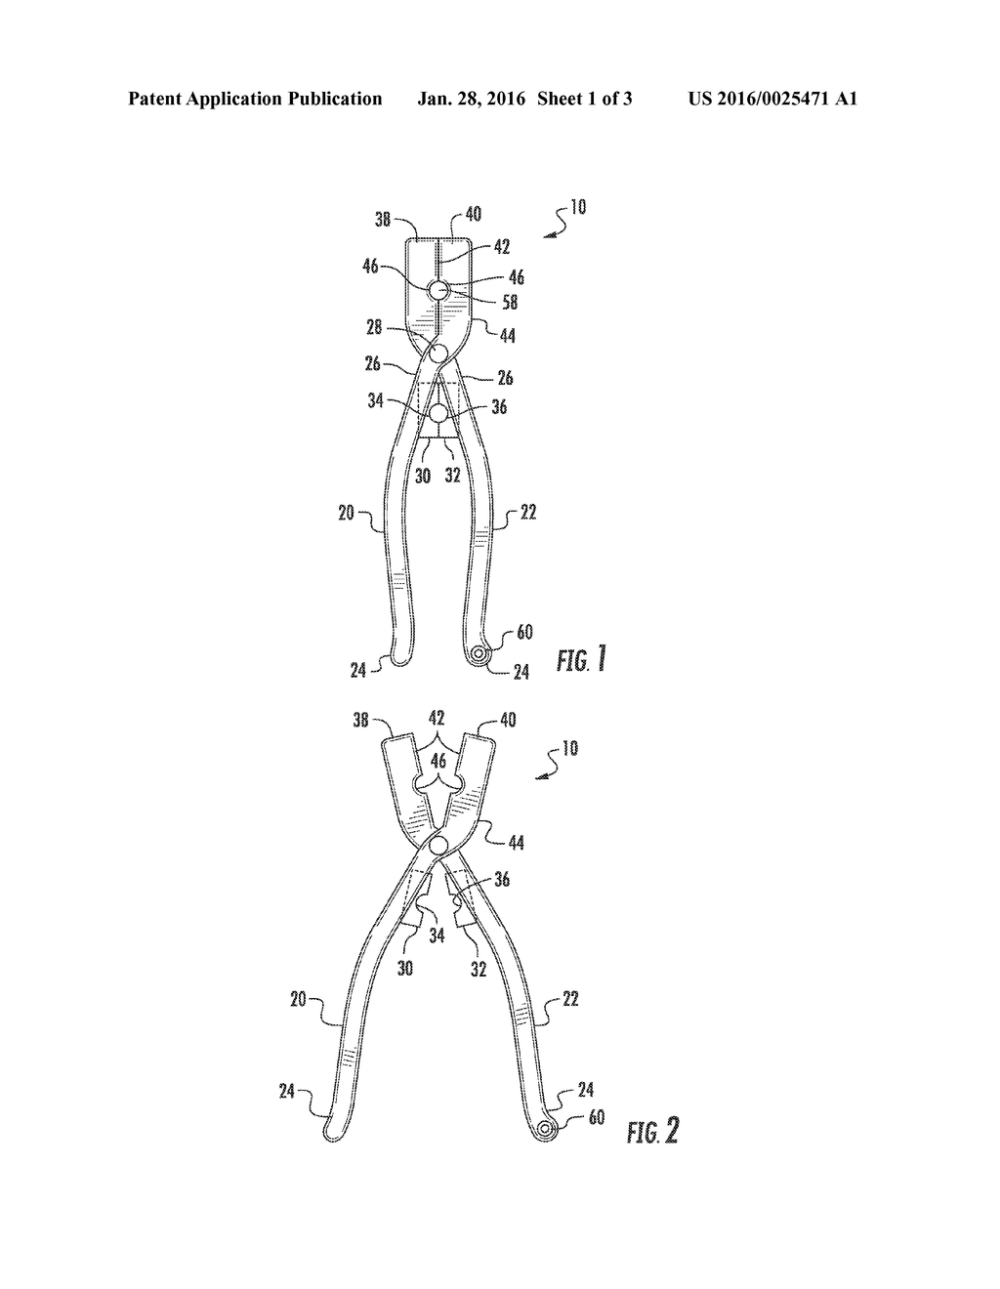 medium resolution of combination hand tool for molding and trimming bullets and crimping a rimfire case to a bullet to make a rimfire cartridge diagram schematic and image